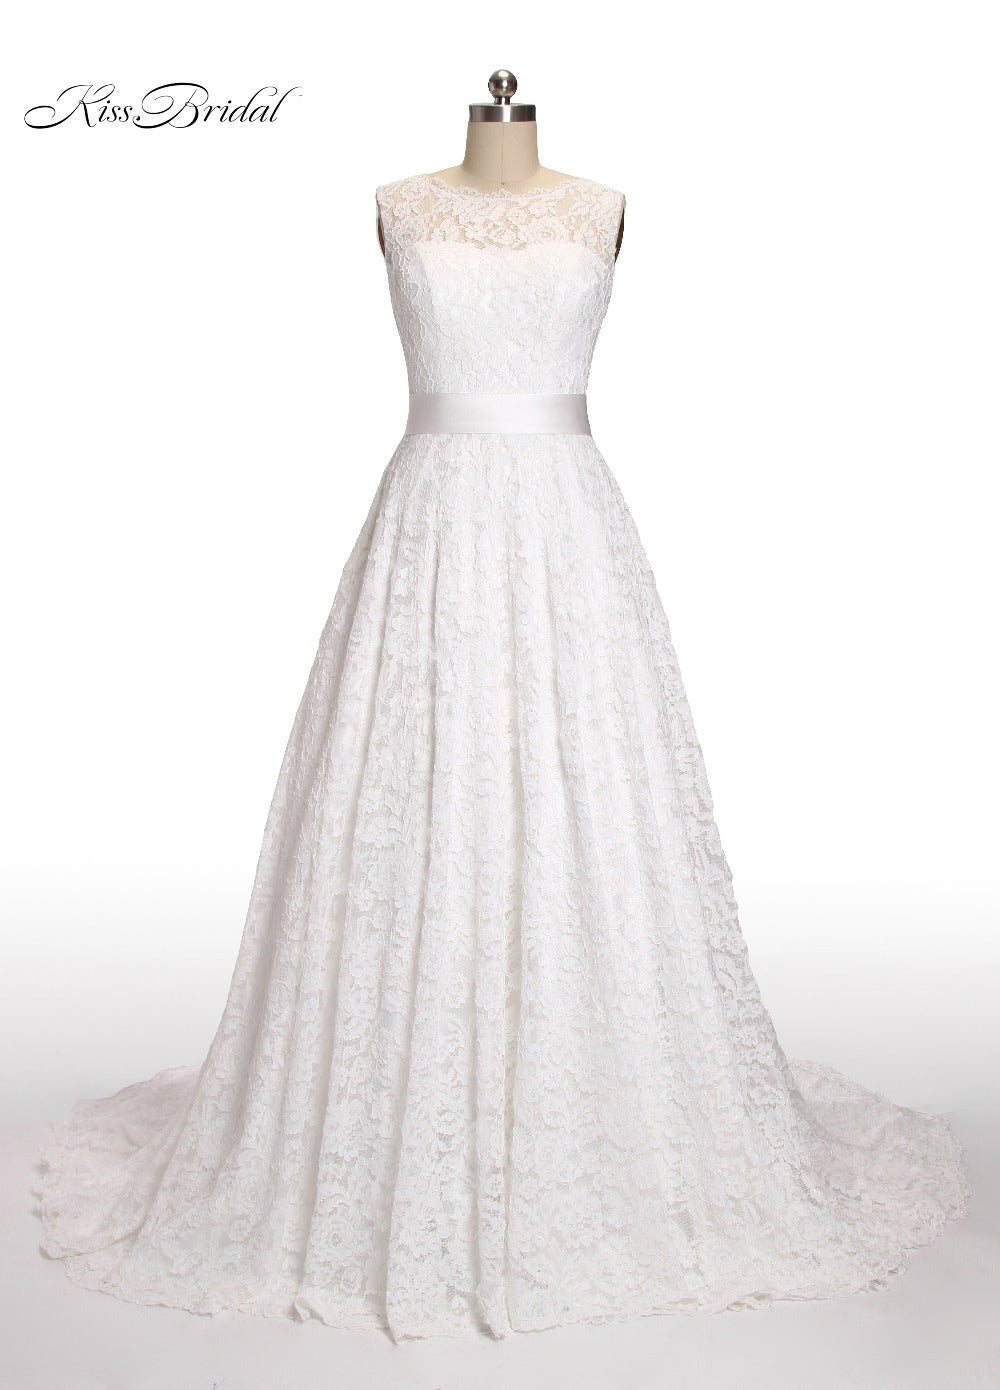 Elegant A-Line Wedding Dresses Scoop Neck Sleeveless Lace Up Back Lace